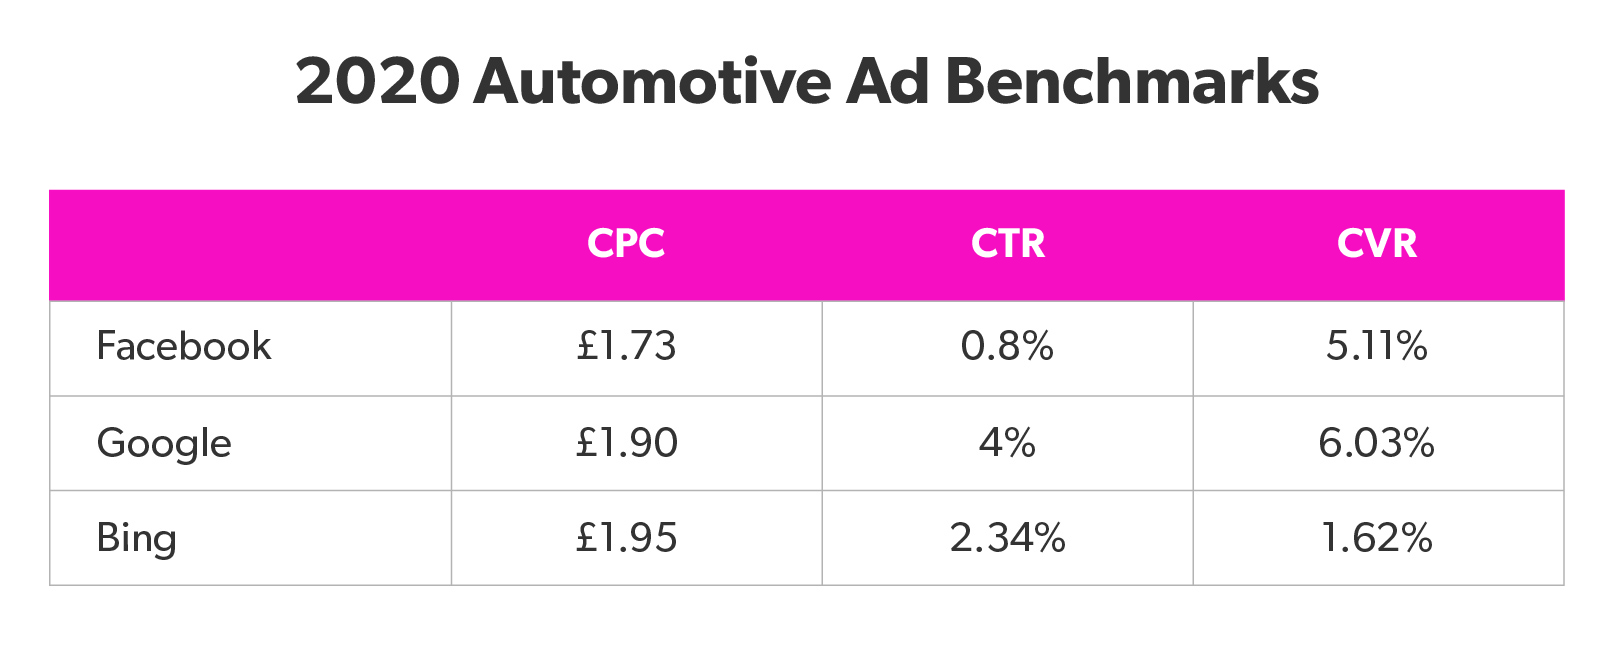 2020 Automotive Ad Benchmarks